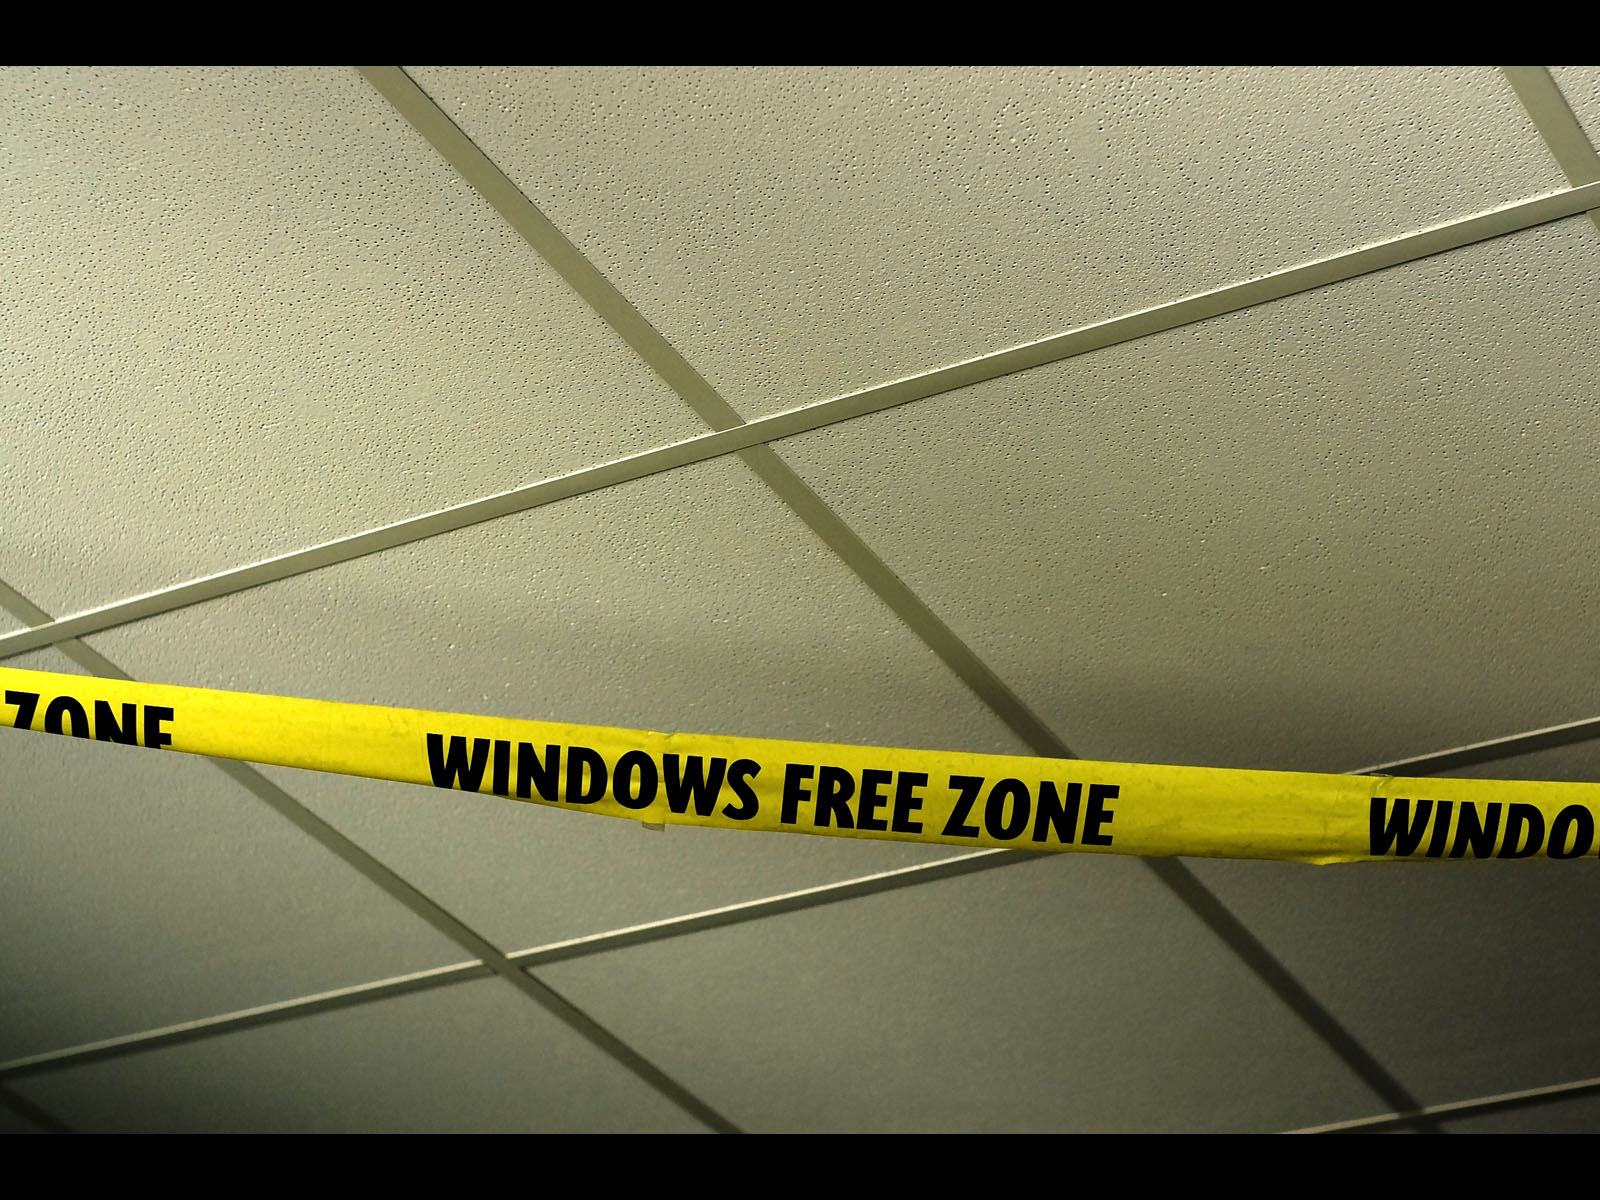 ws_Windows_free_zone_1600x1200.jpg